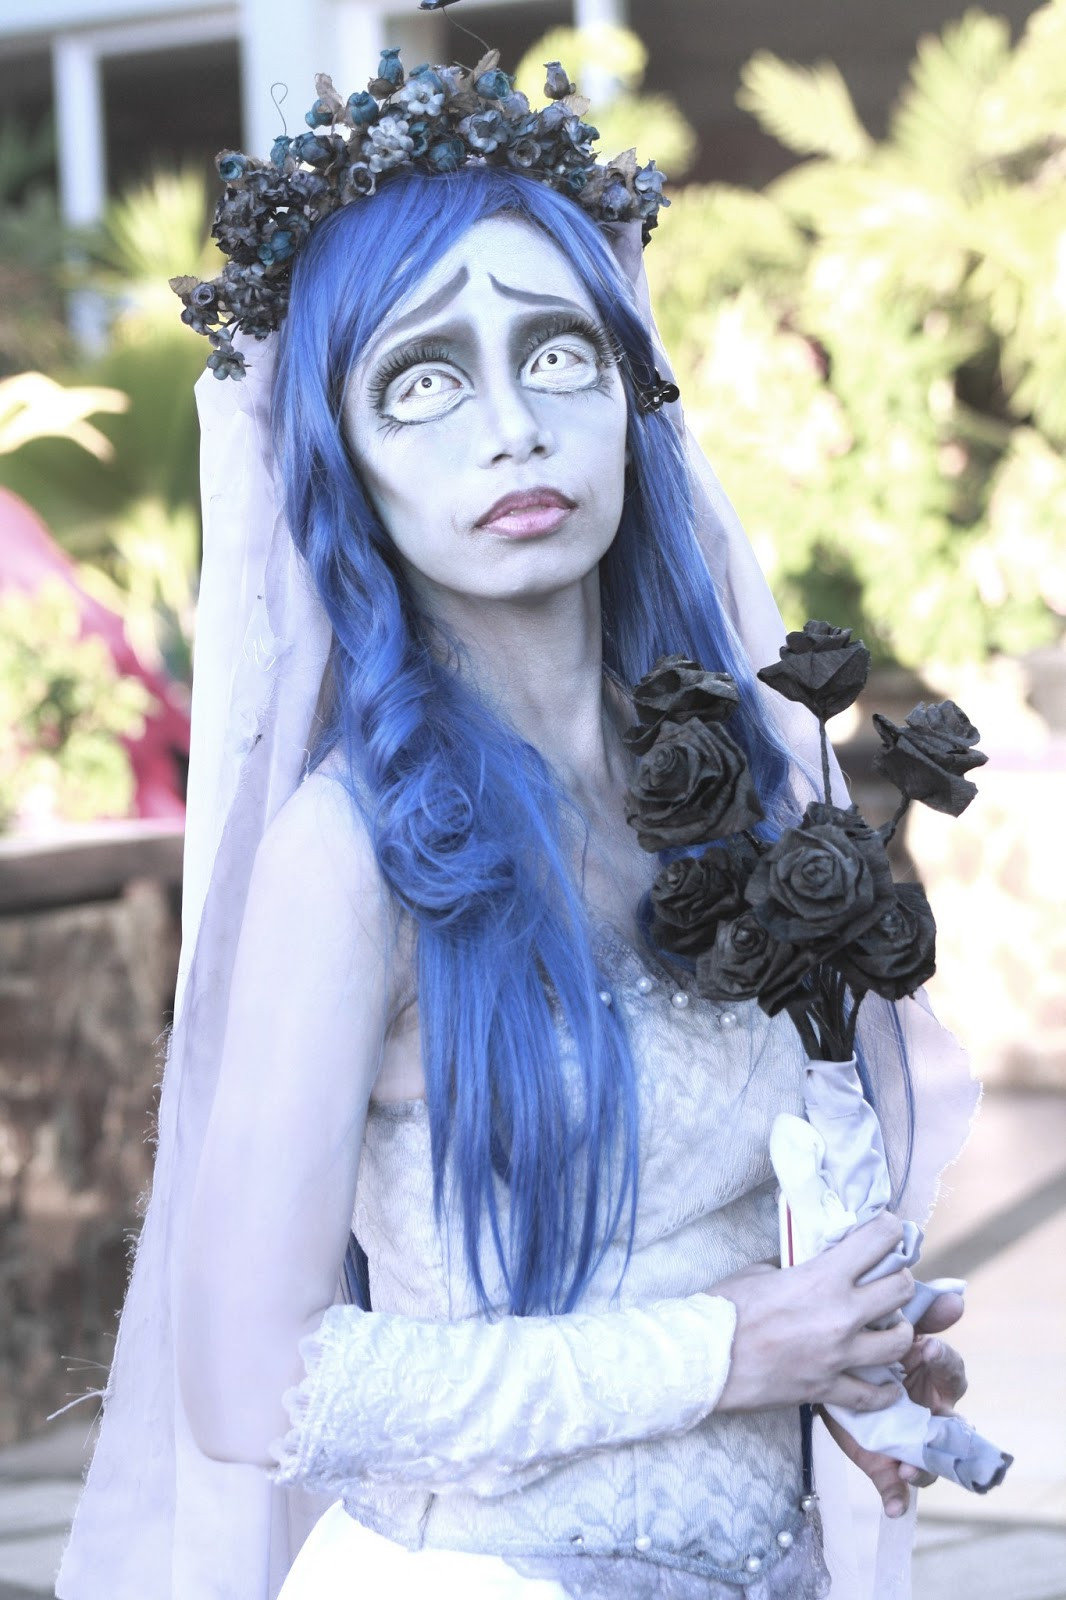 Best ideas about Corpse Bride Costume DIY . Save or Pin oishari DIY Corpse Bride Cosplay Now.